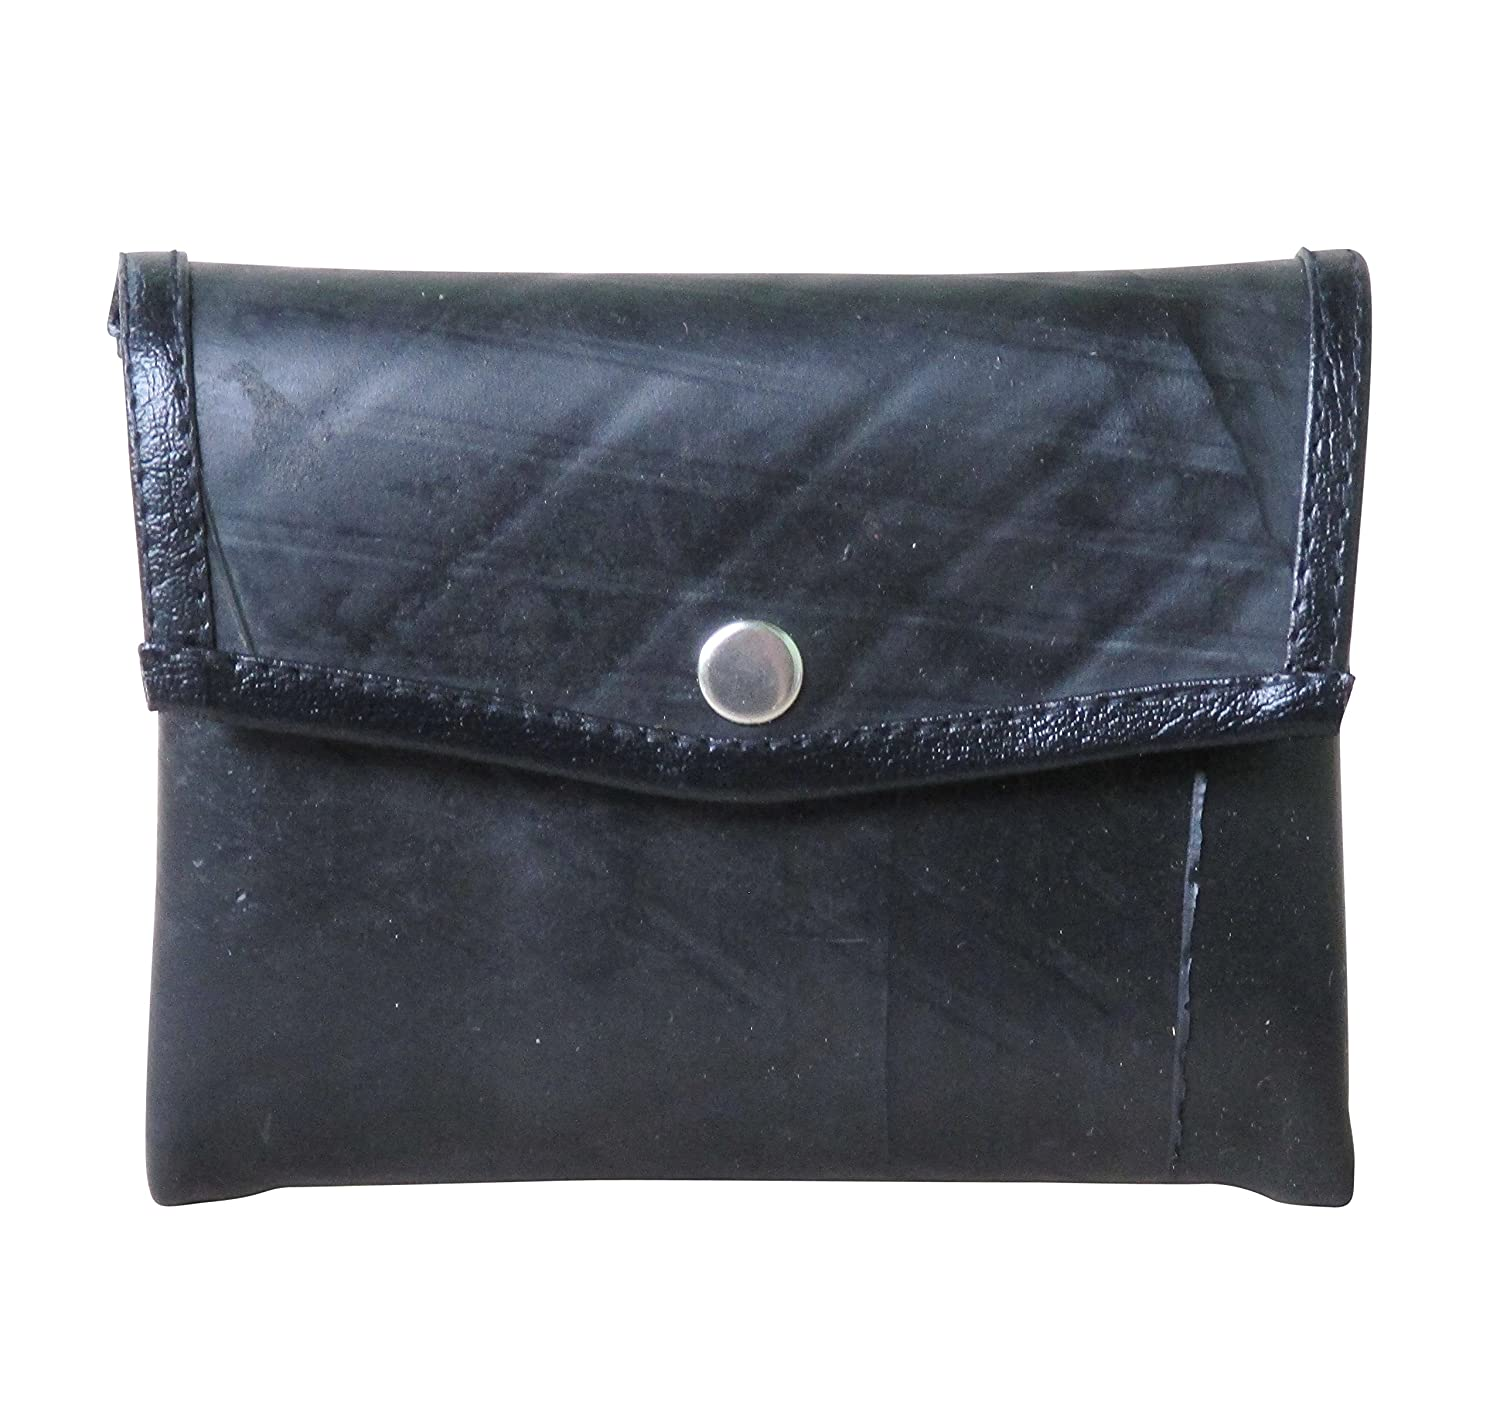 Snap coin purse using upcycled inner tube - FREE SHIPPING - upcycling eco friendly vegan recycled reclaimed salvaged handmade unique gift wallet purse innertube tubes tire rubber bike bikes tyre